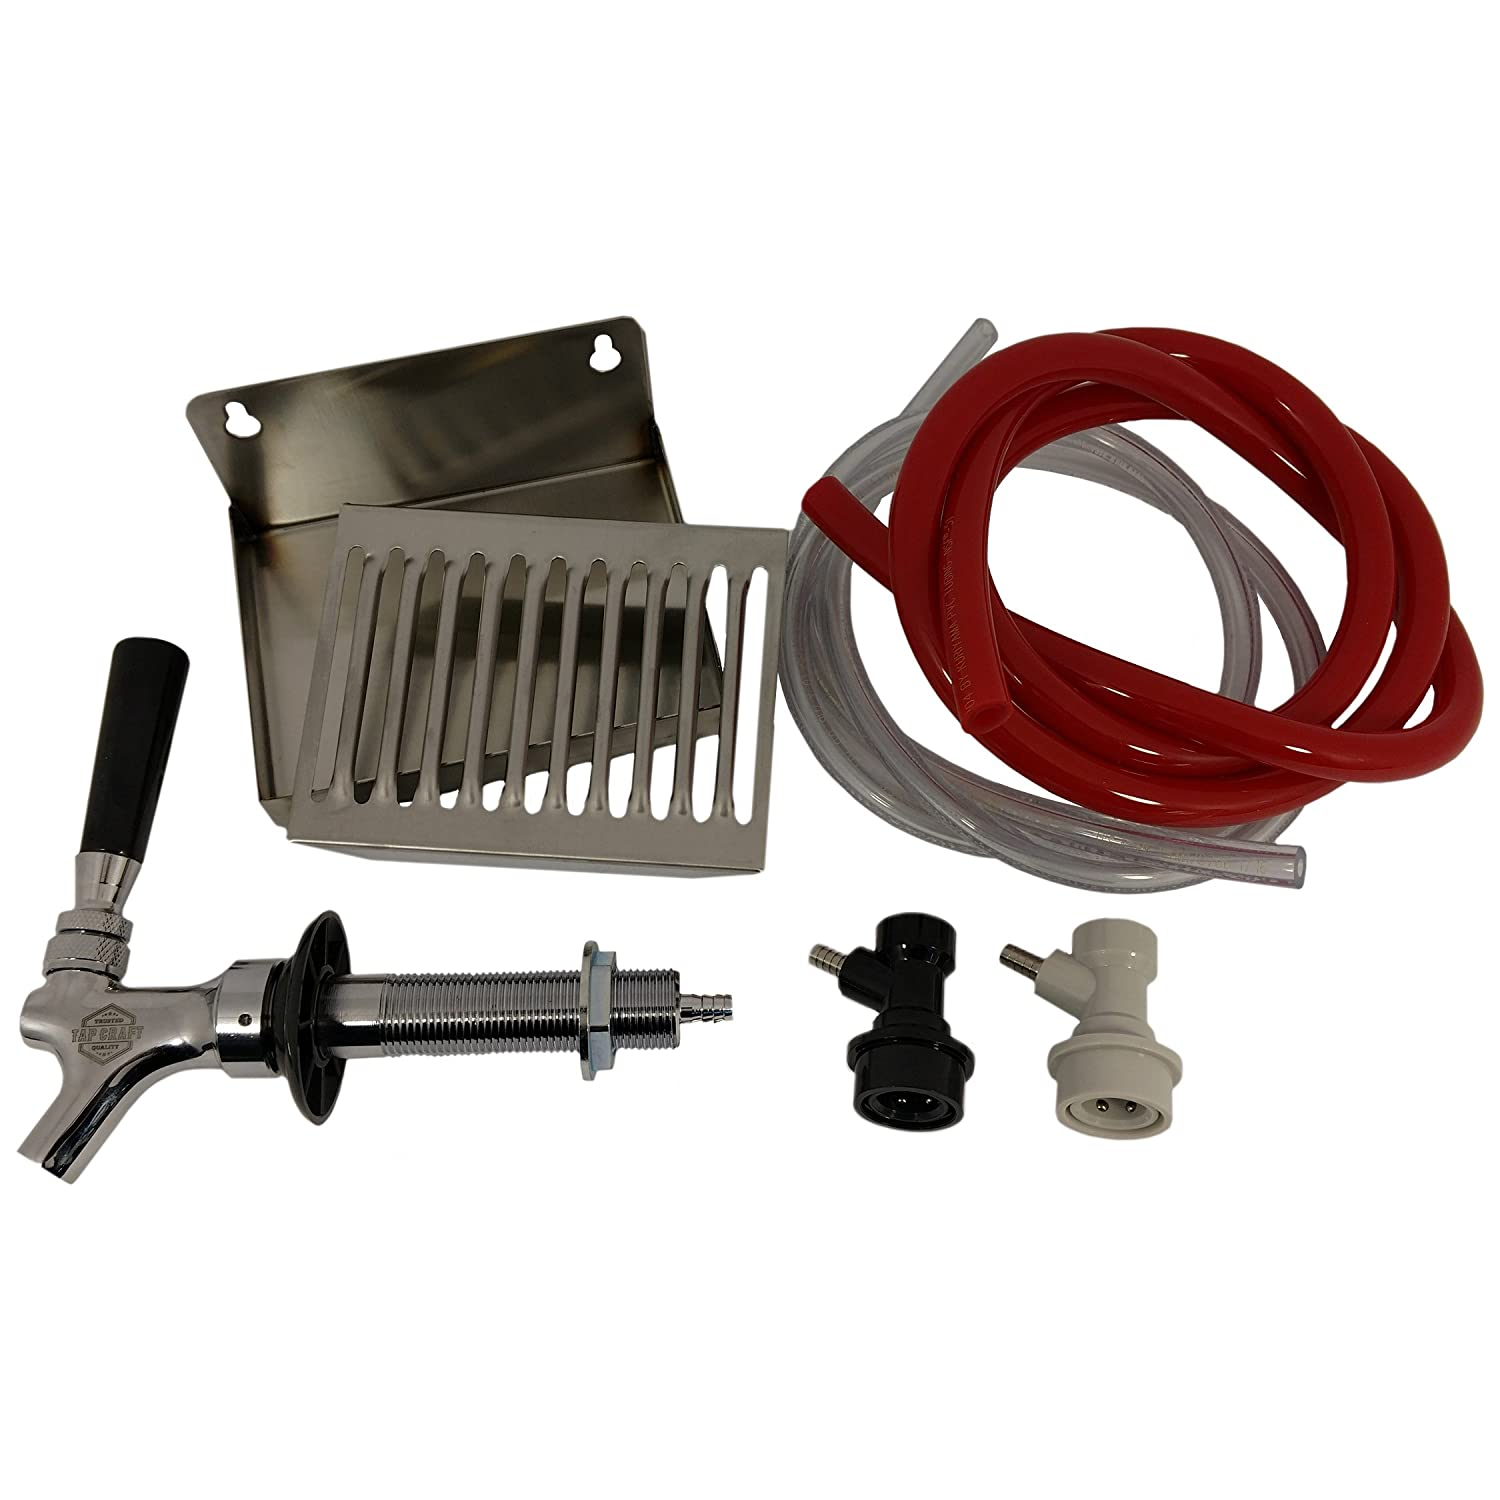 "Single Faucet Draft Beer Refrigerator Conversion Kit w/ 4 1/2"" Shank"